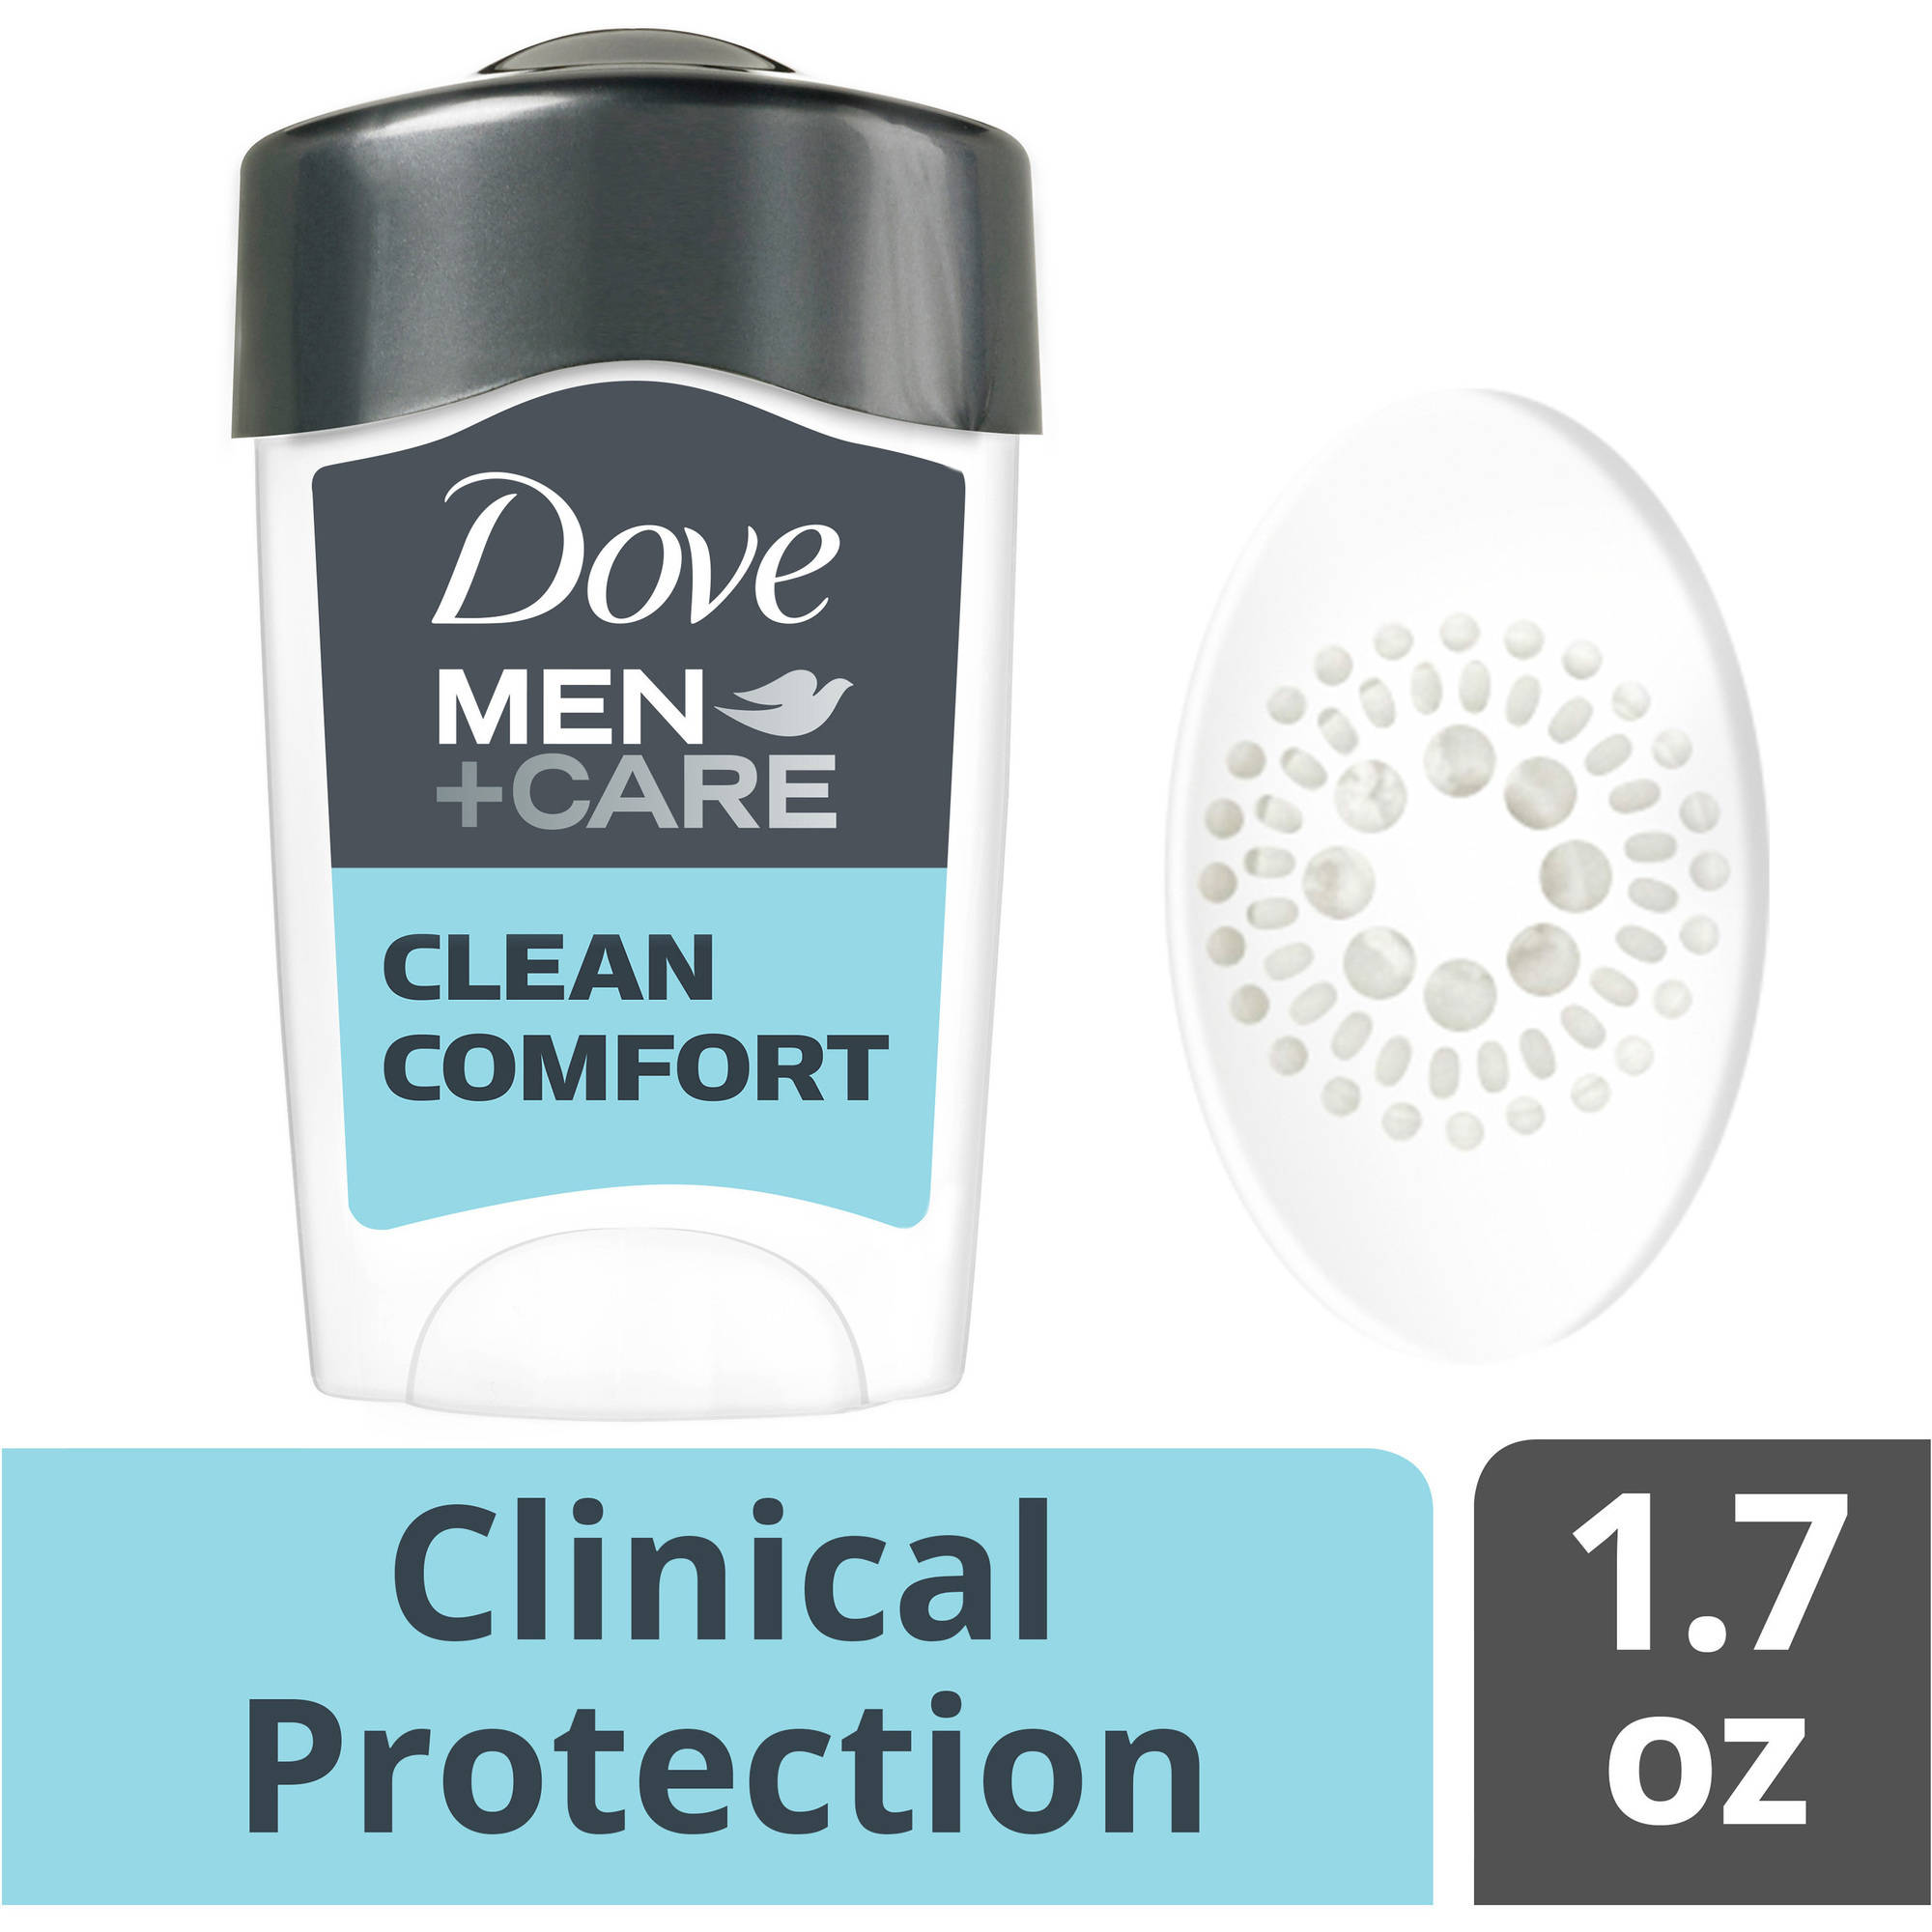 Dove Men+Care Clinical Clean Comfort Antiperspirant Deodorant, 1.7 oz